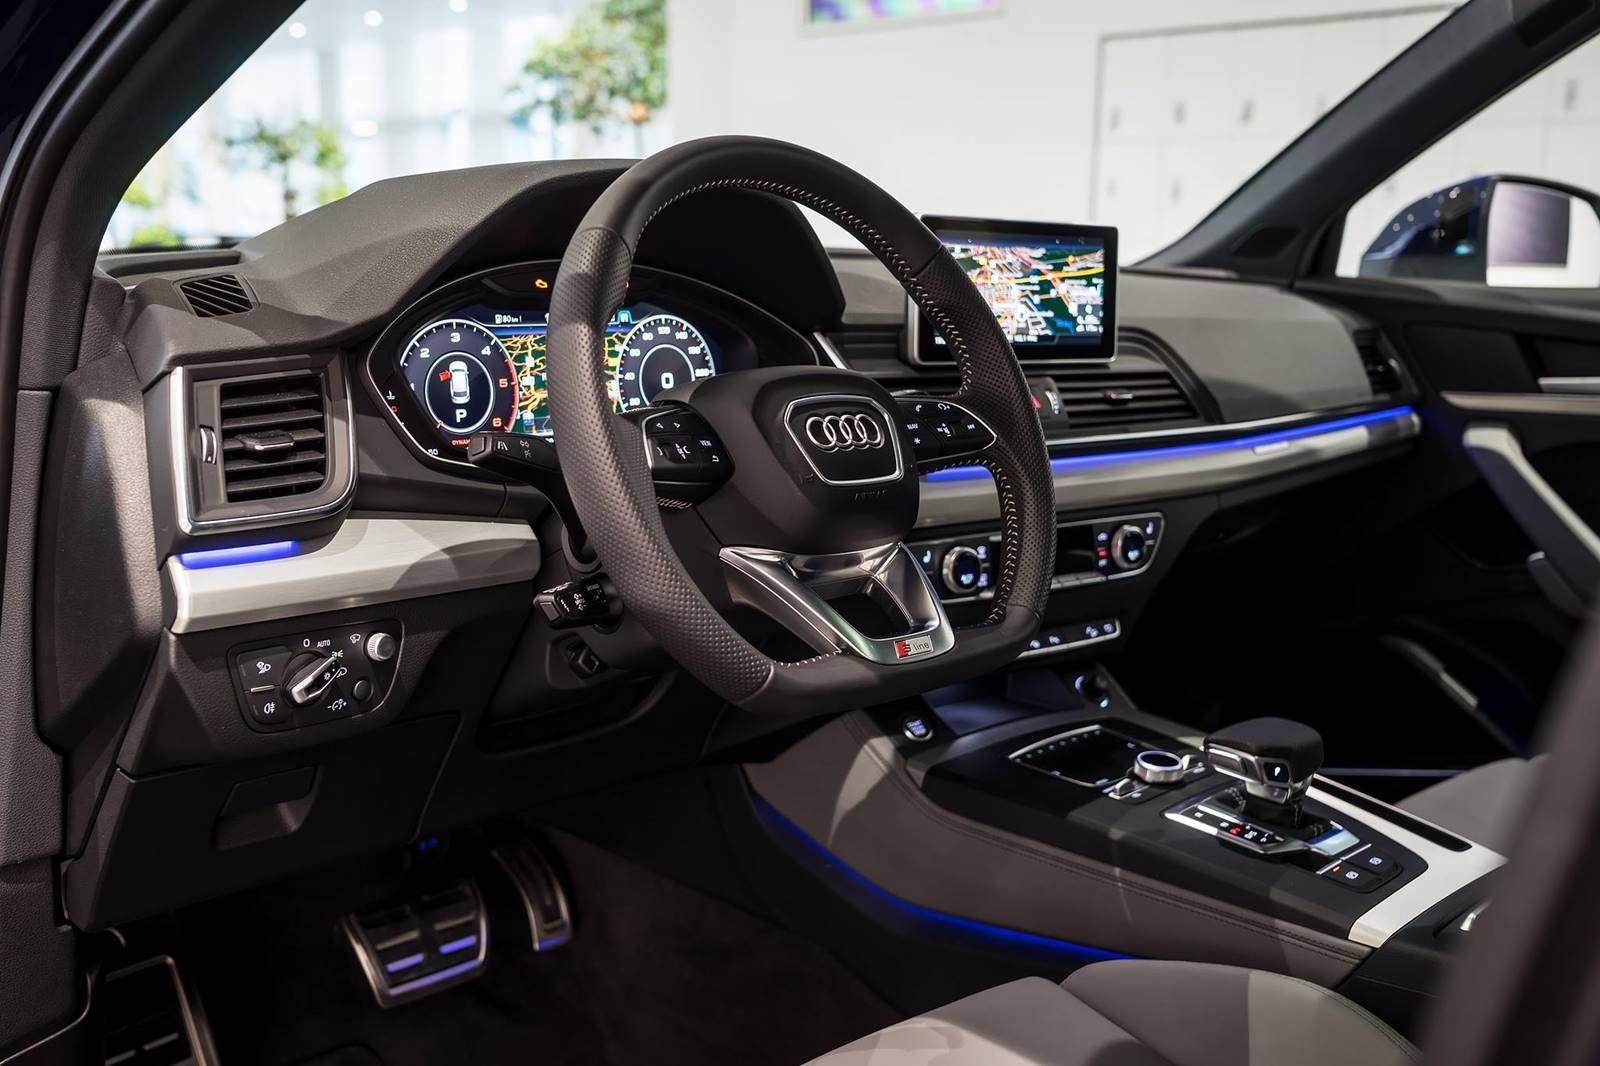 novo audi q5 2018 come a a ser vendido no brasil pre os car blog br. Black Bedroom Furniture Sets. Home Design Ideas